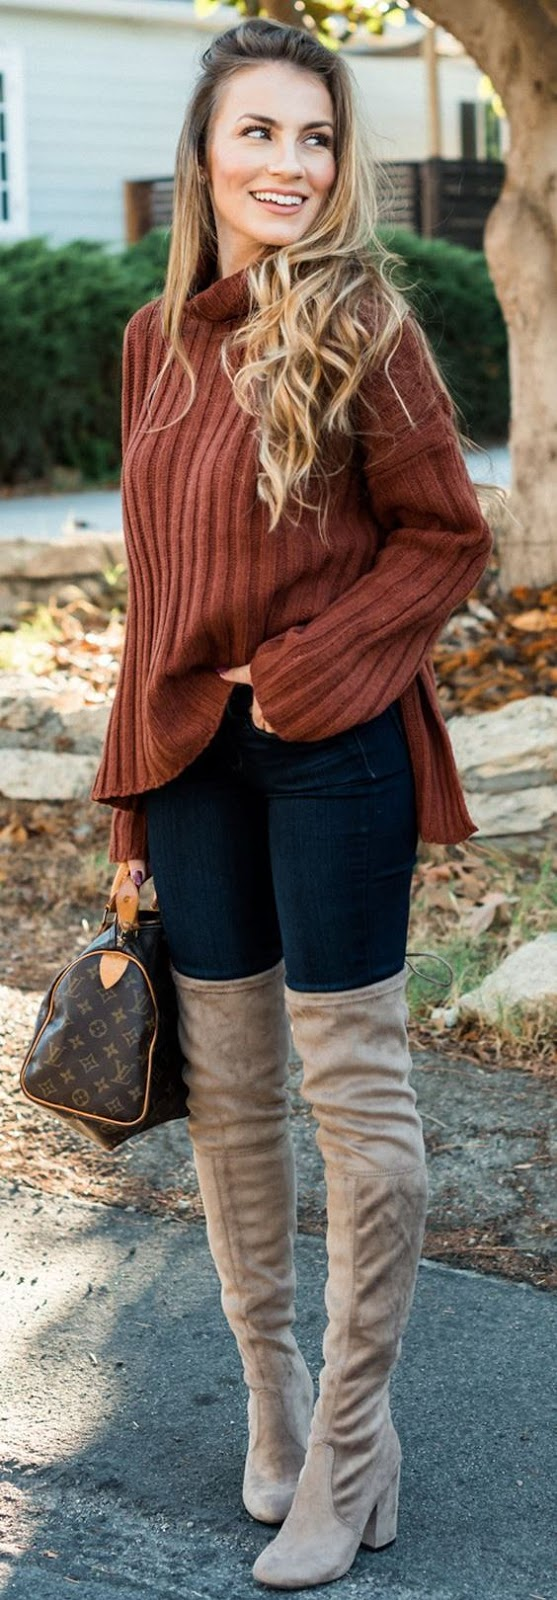 trendy fall outfit idea : sweater + bag + jeans + over the knee boots